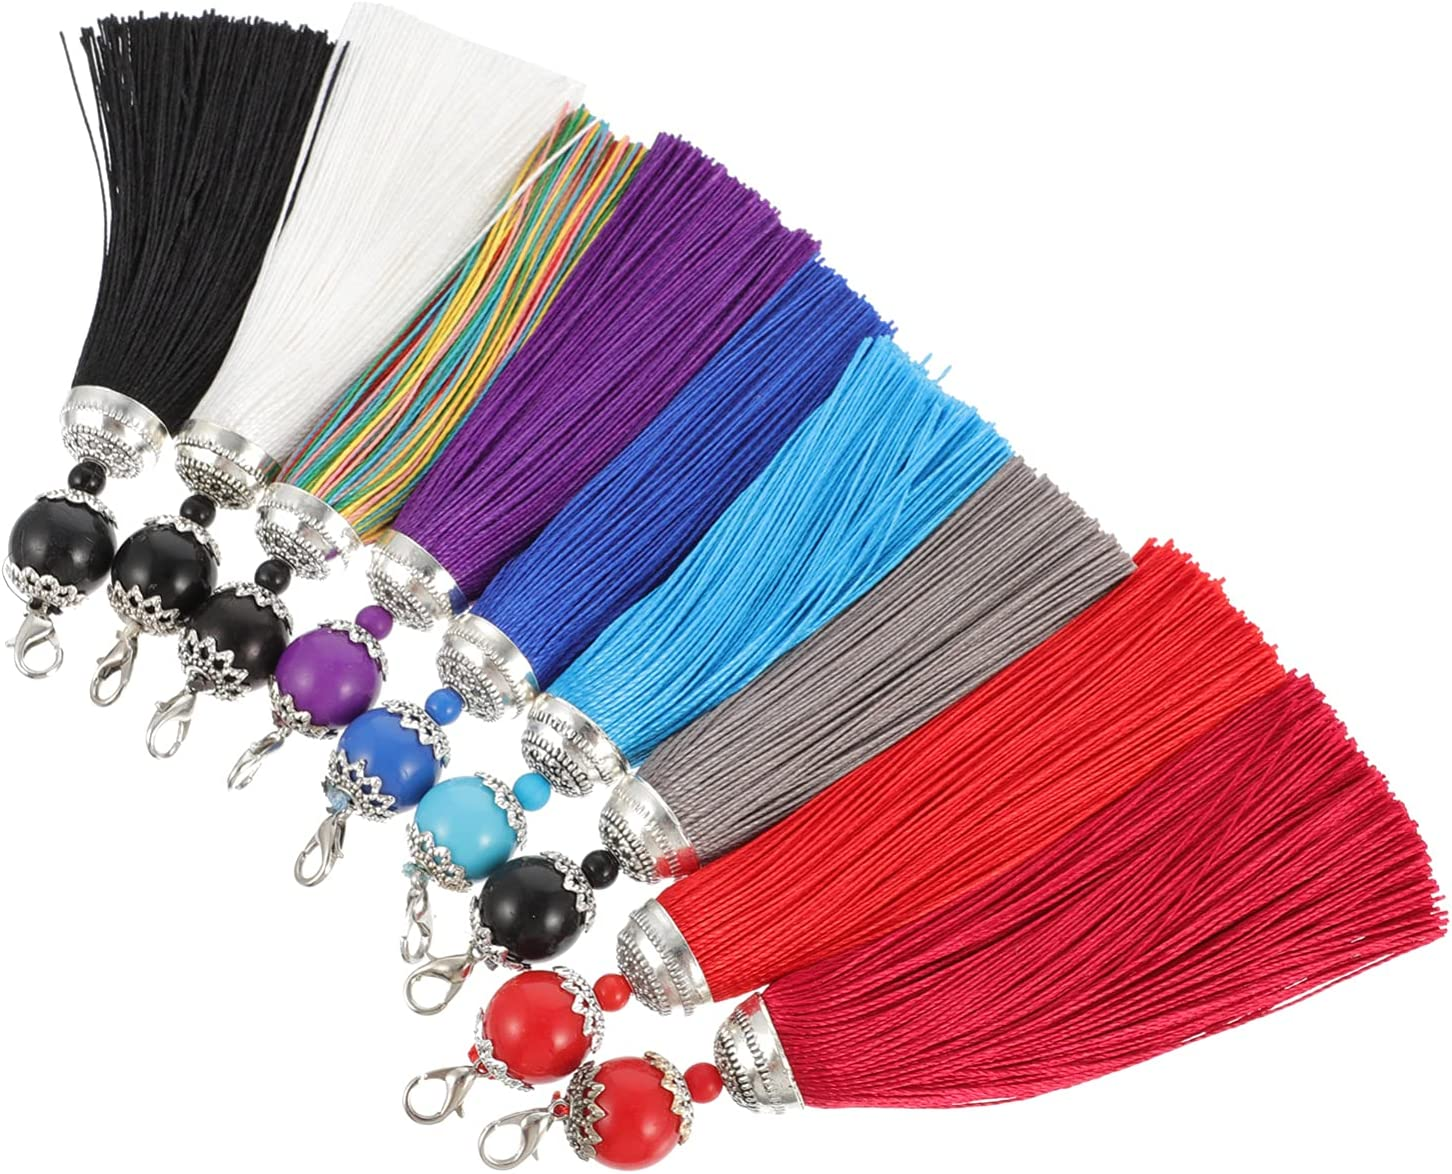 EXCEART Tassels for Jewelry Ranking TOP10 Charms Making Keychain Mini Max 53% OFF